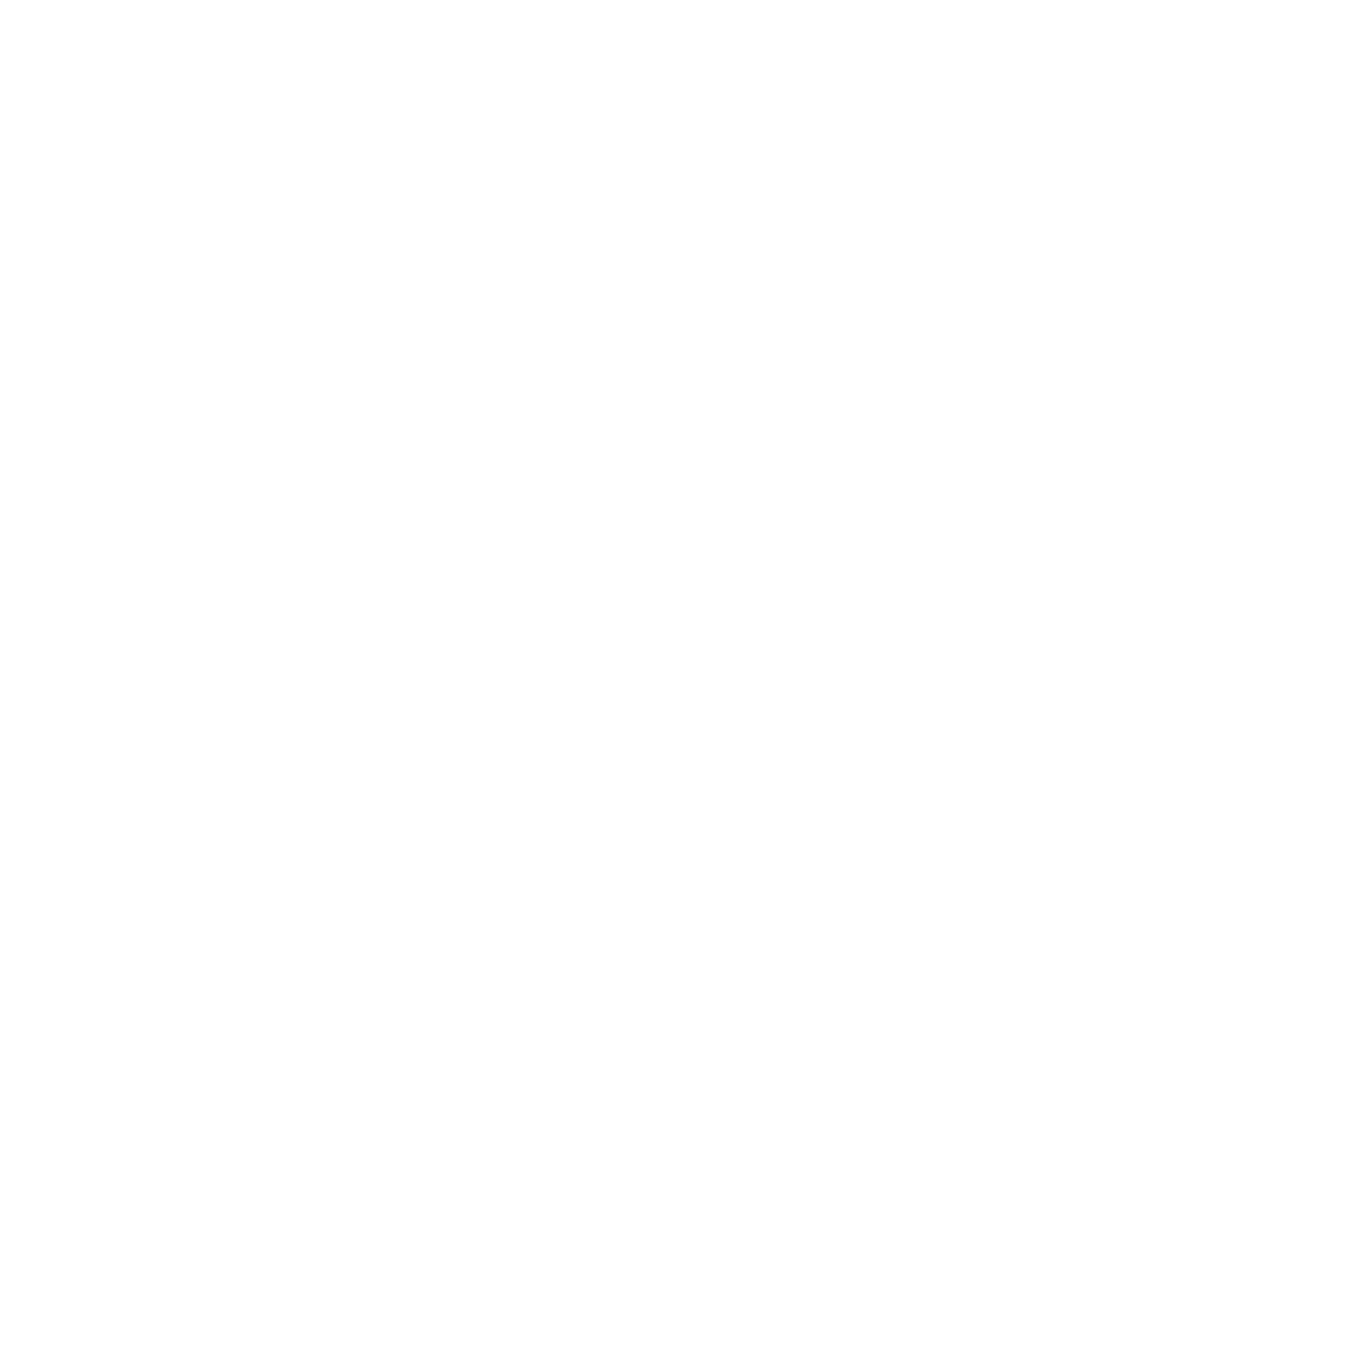 National Botanicals 3rd Party Lab Tested Certificate of Analysis